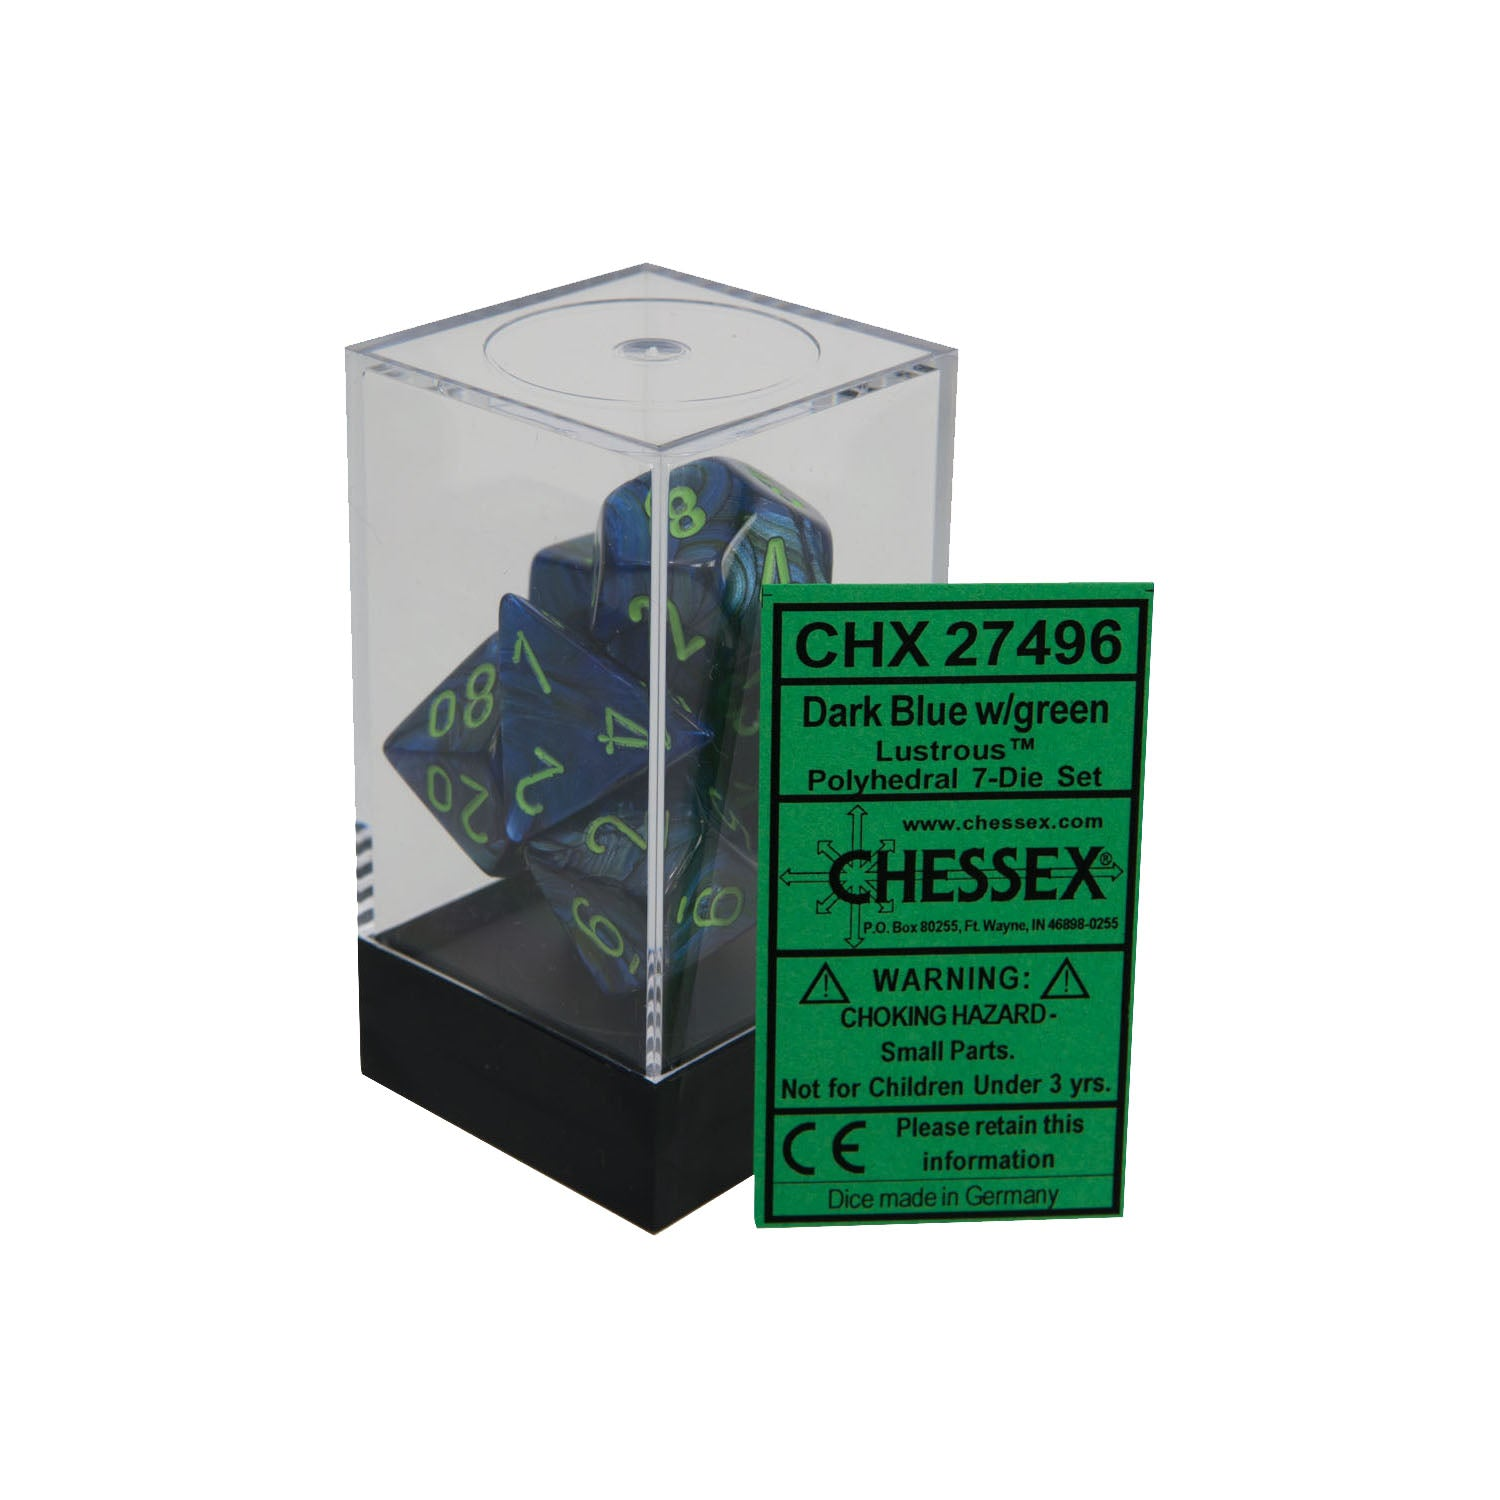 Chessex CHX27496 Dark Blue w/ green Lustrous™ Polyhedral Dice Set